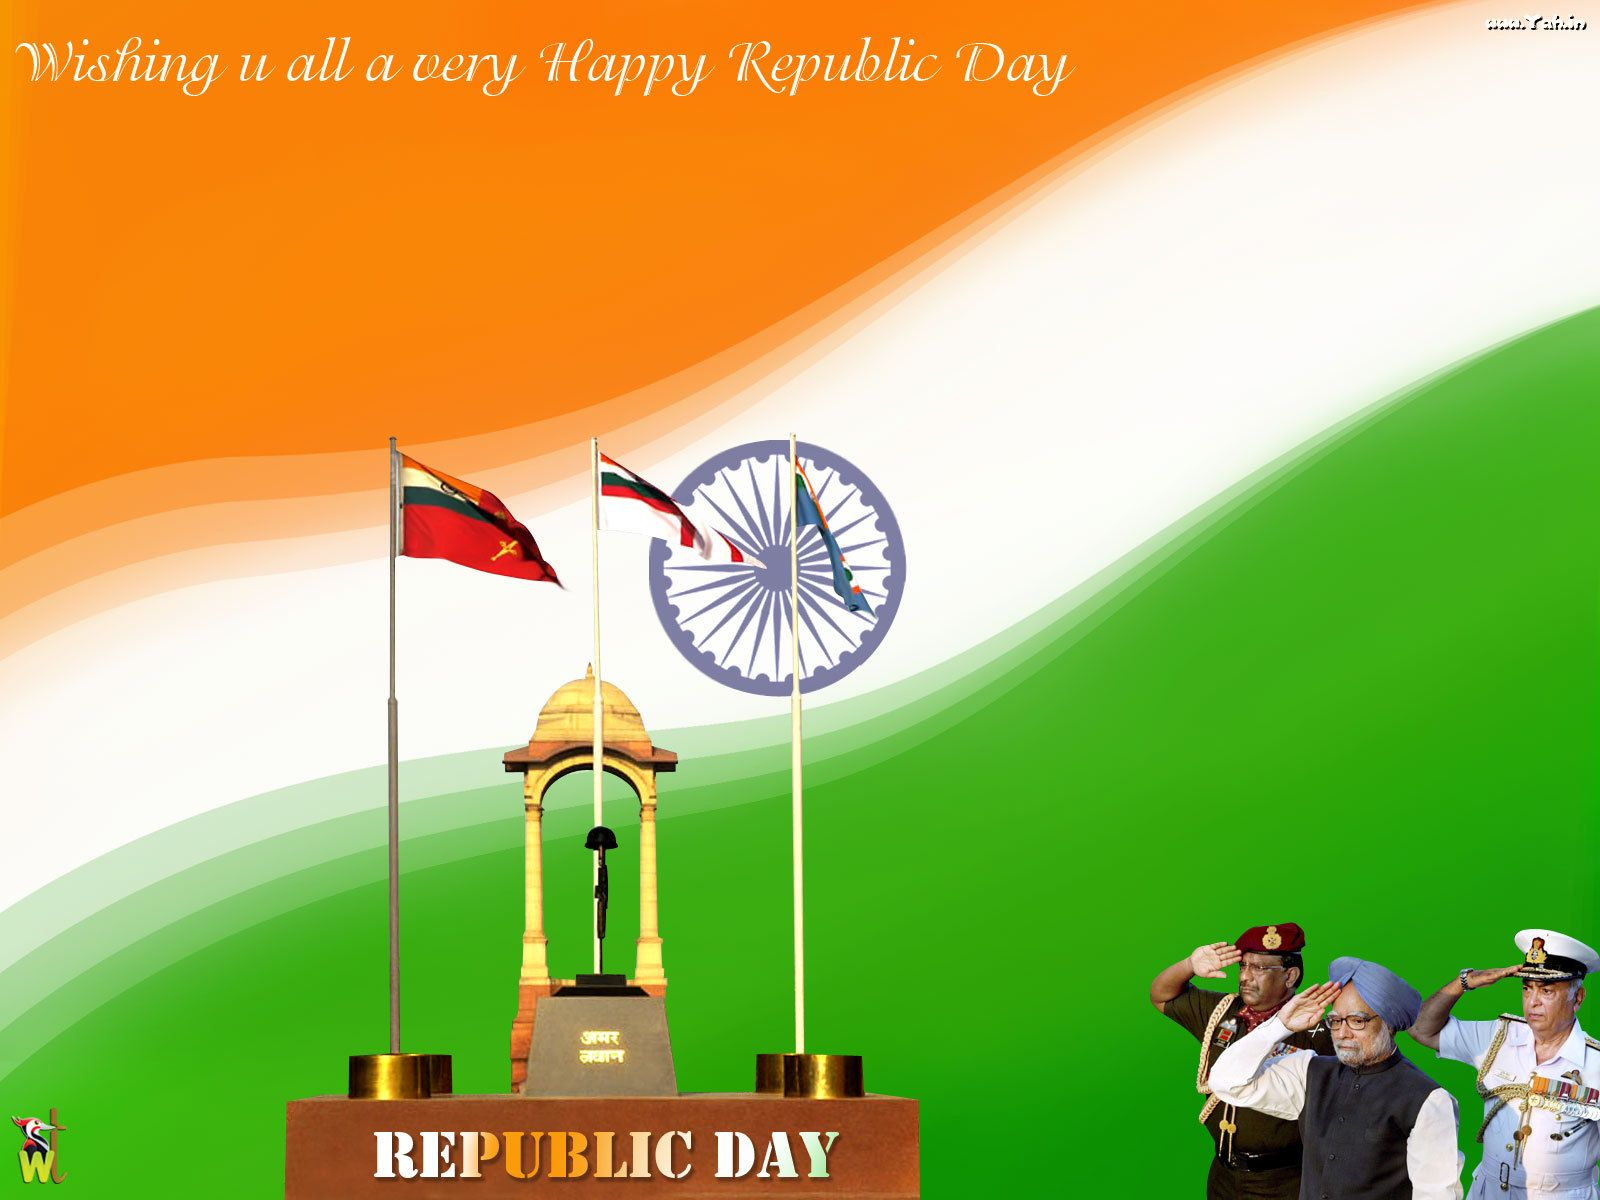 Occasions Republic Day 26 January Wallpaper January Wallpaper Hd wallpapers india happy republic day